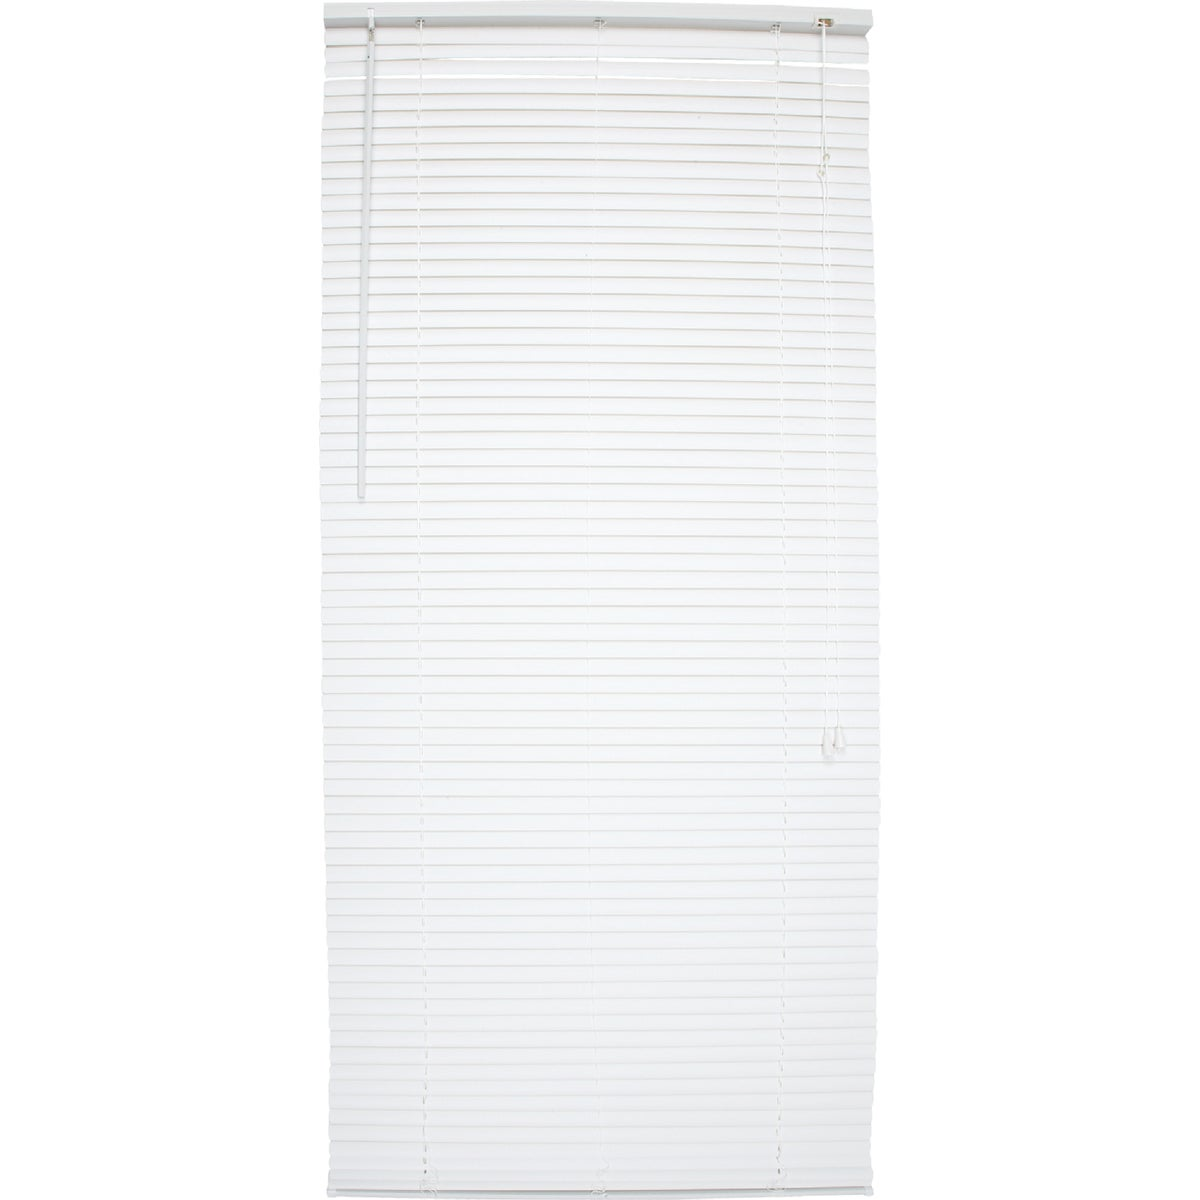 21X64 WHITE MINI BLIND - 614866 by Lotus Wind Incom